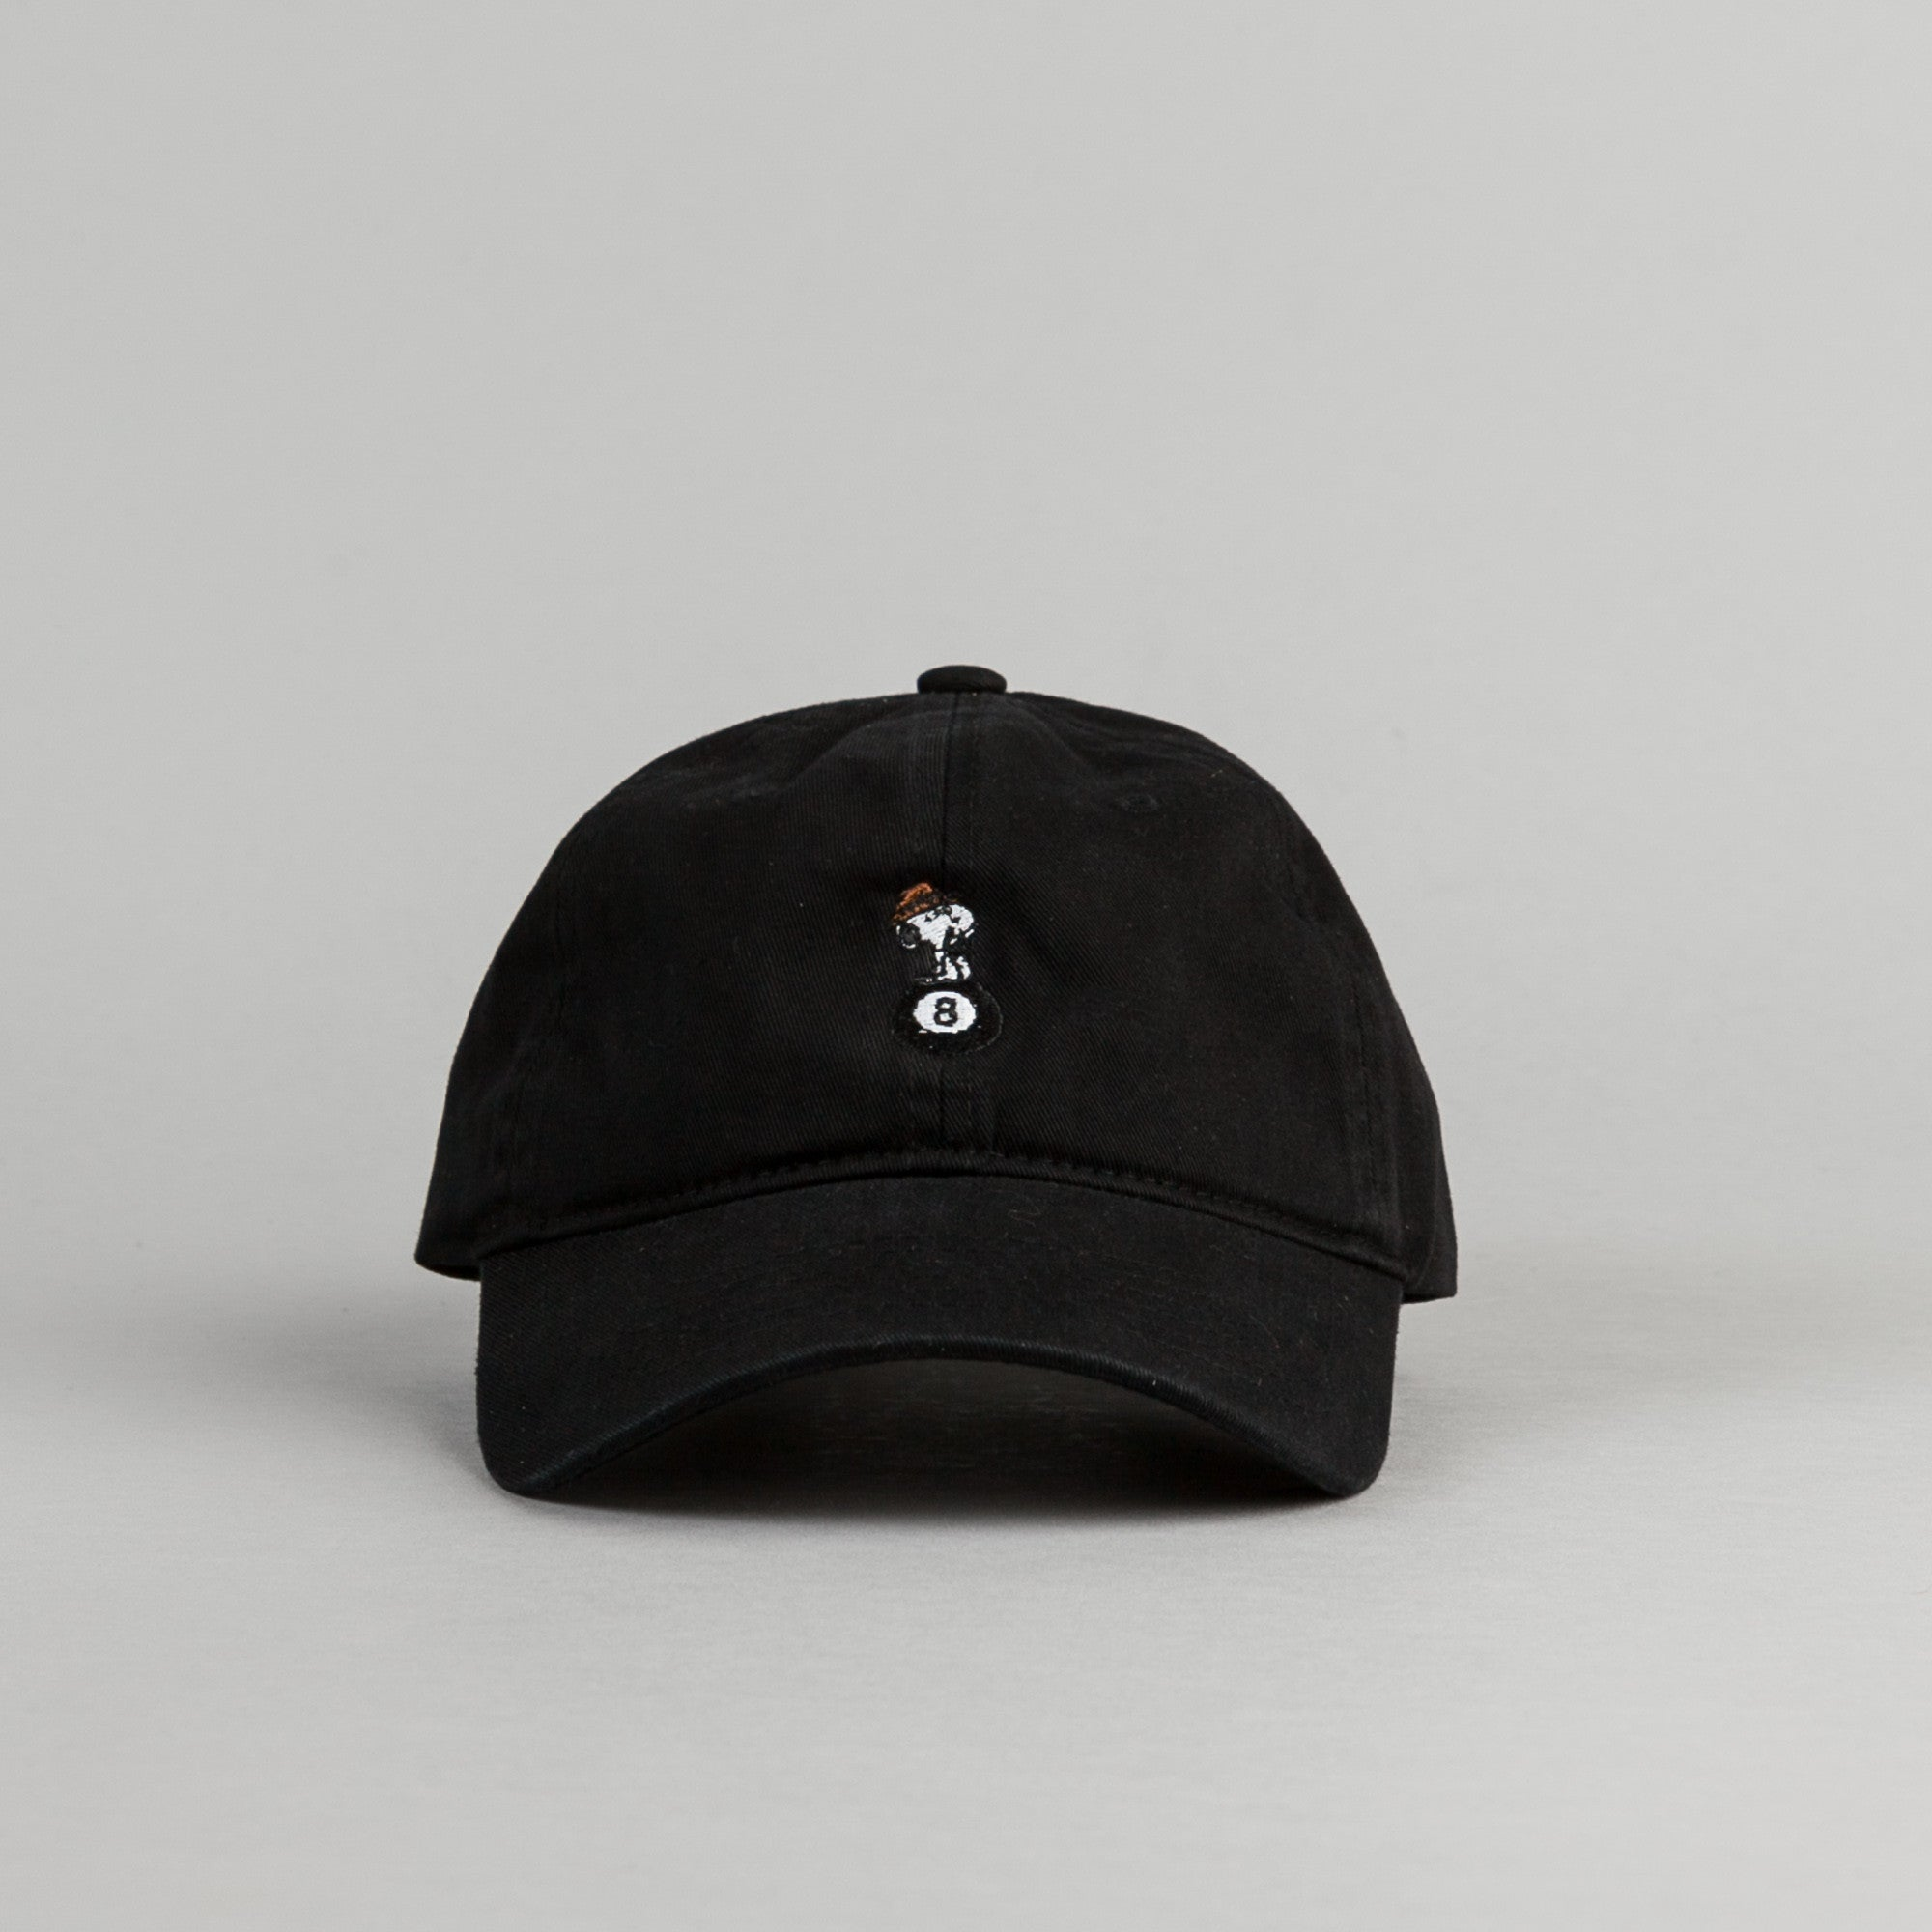 HUF Spike 8 Ball Cap - Black